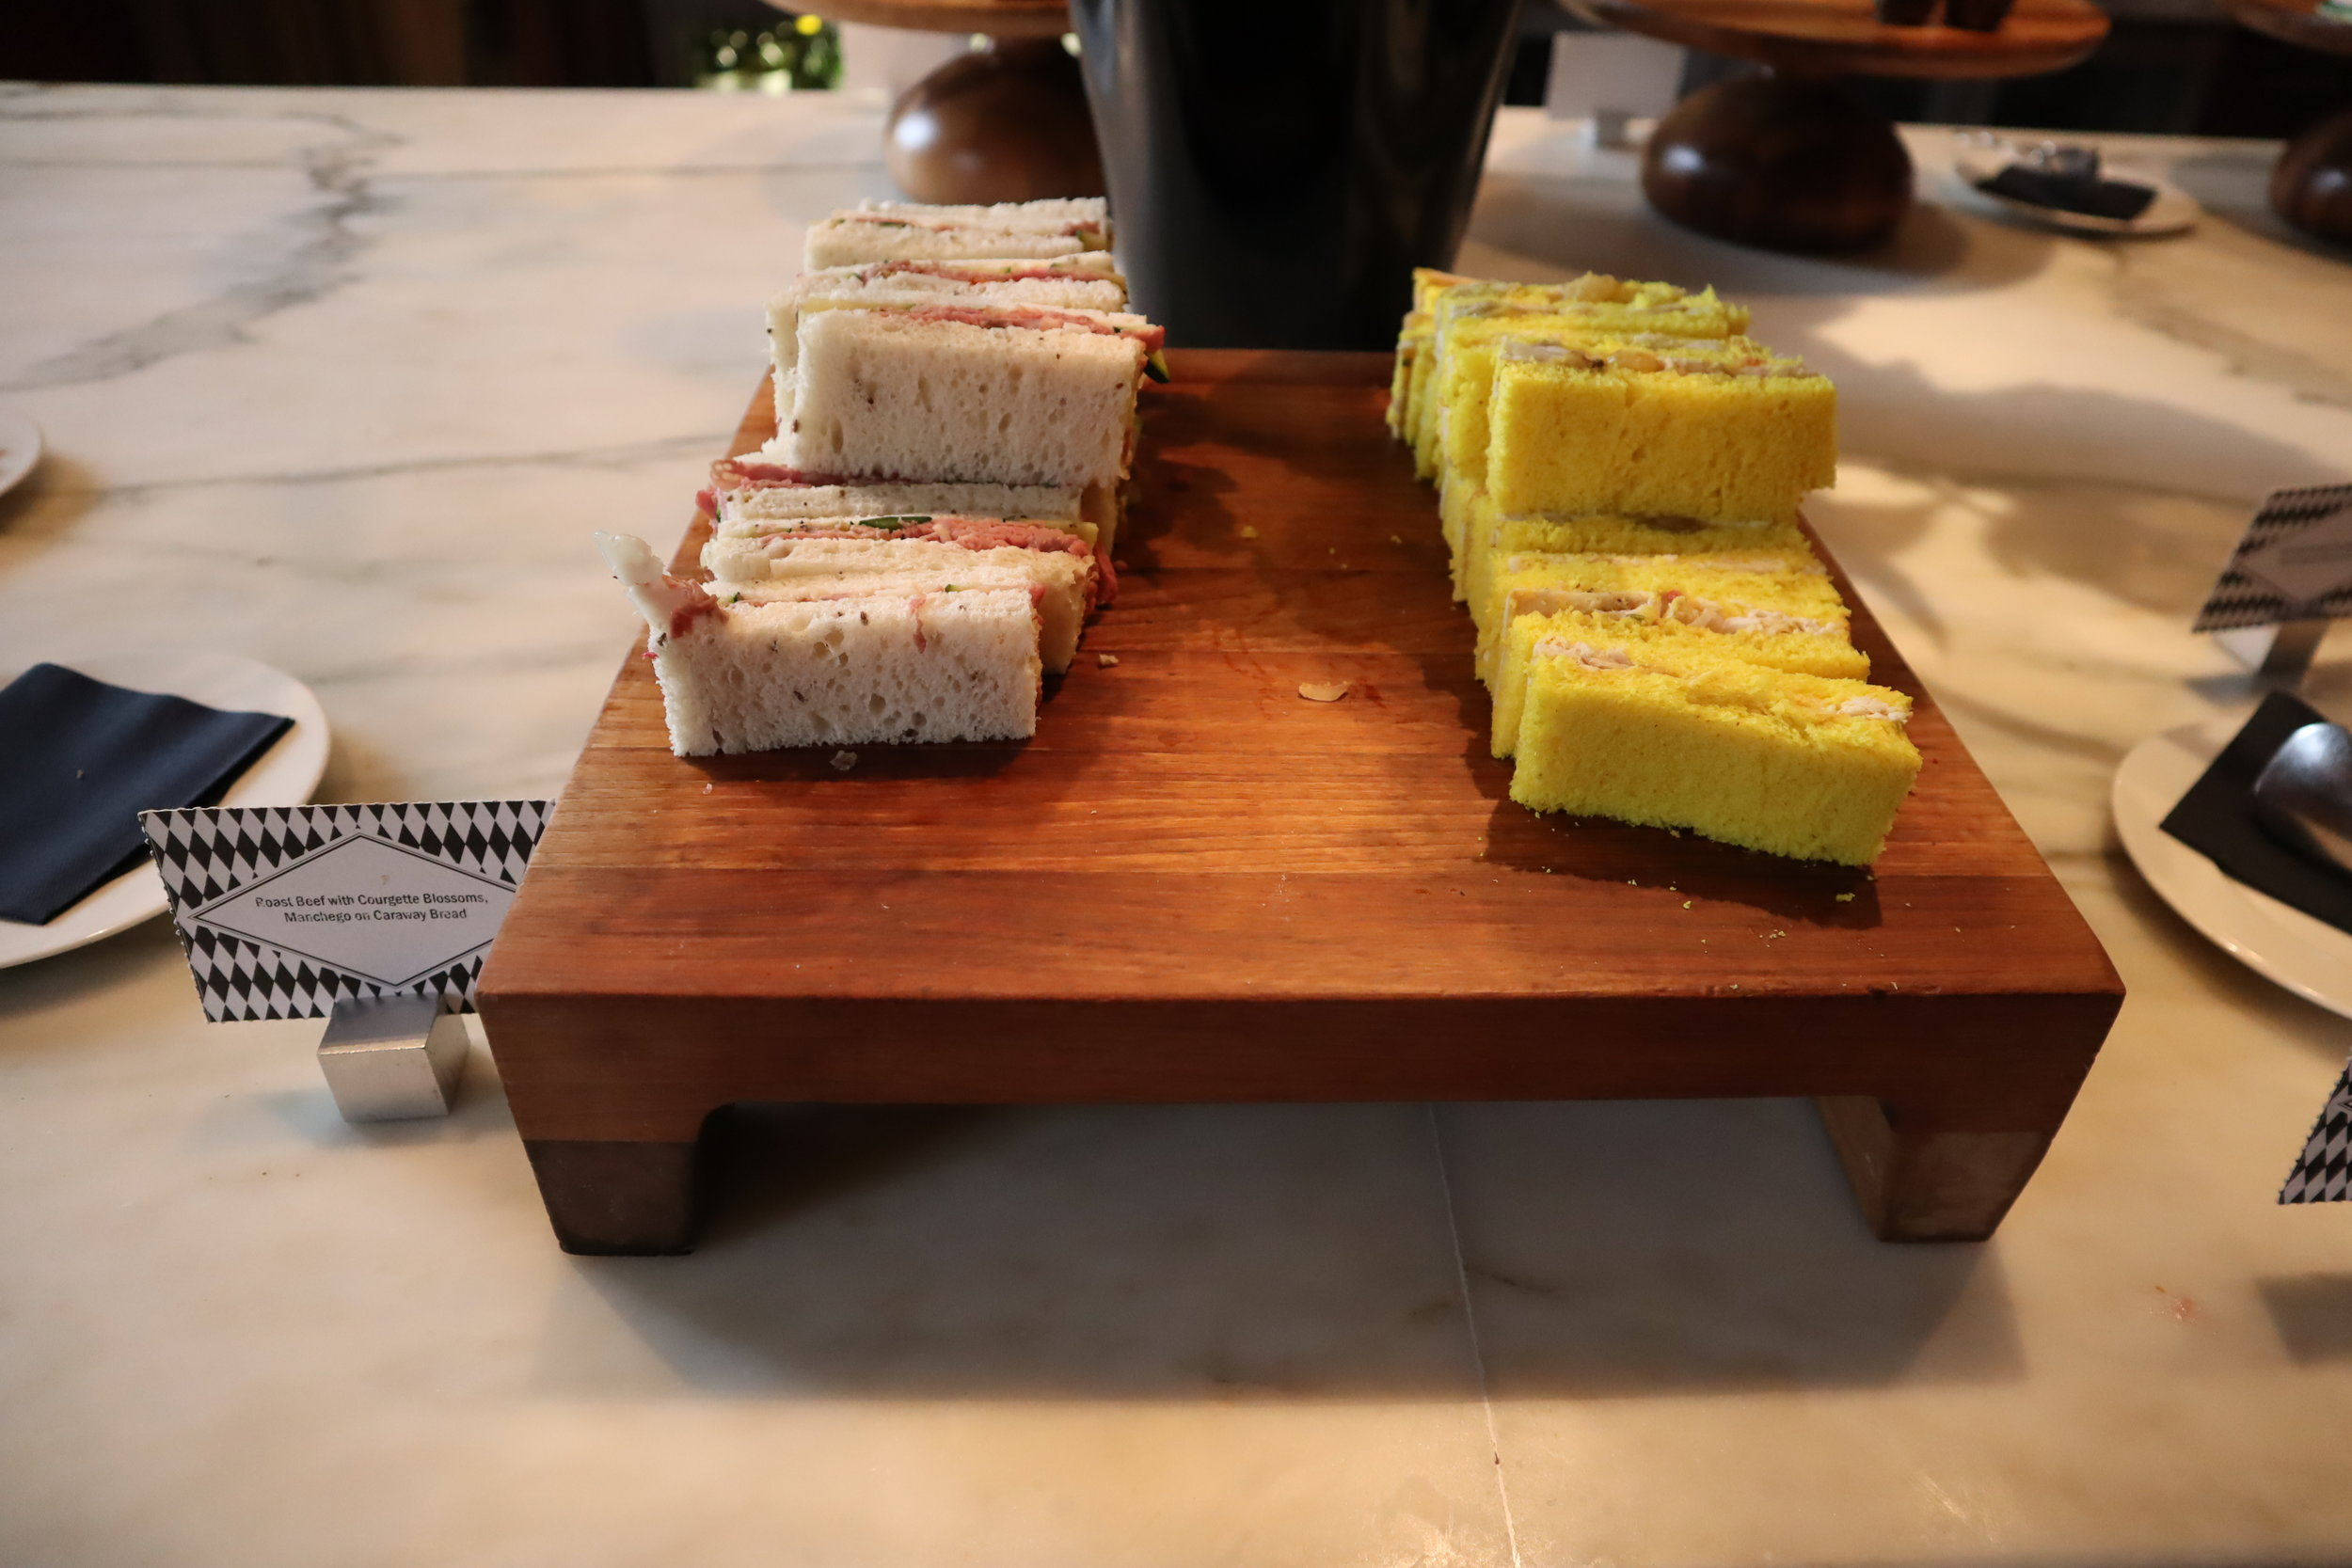 St. Pancras Renaissance Hotel London – Chambers Club afternoon tea selection